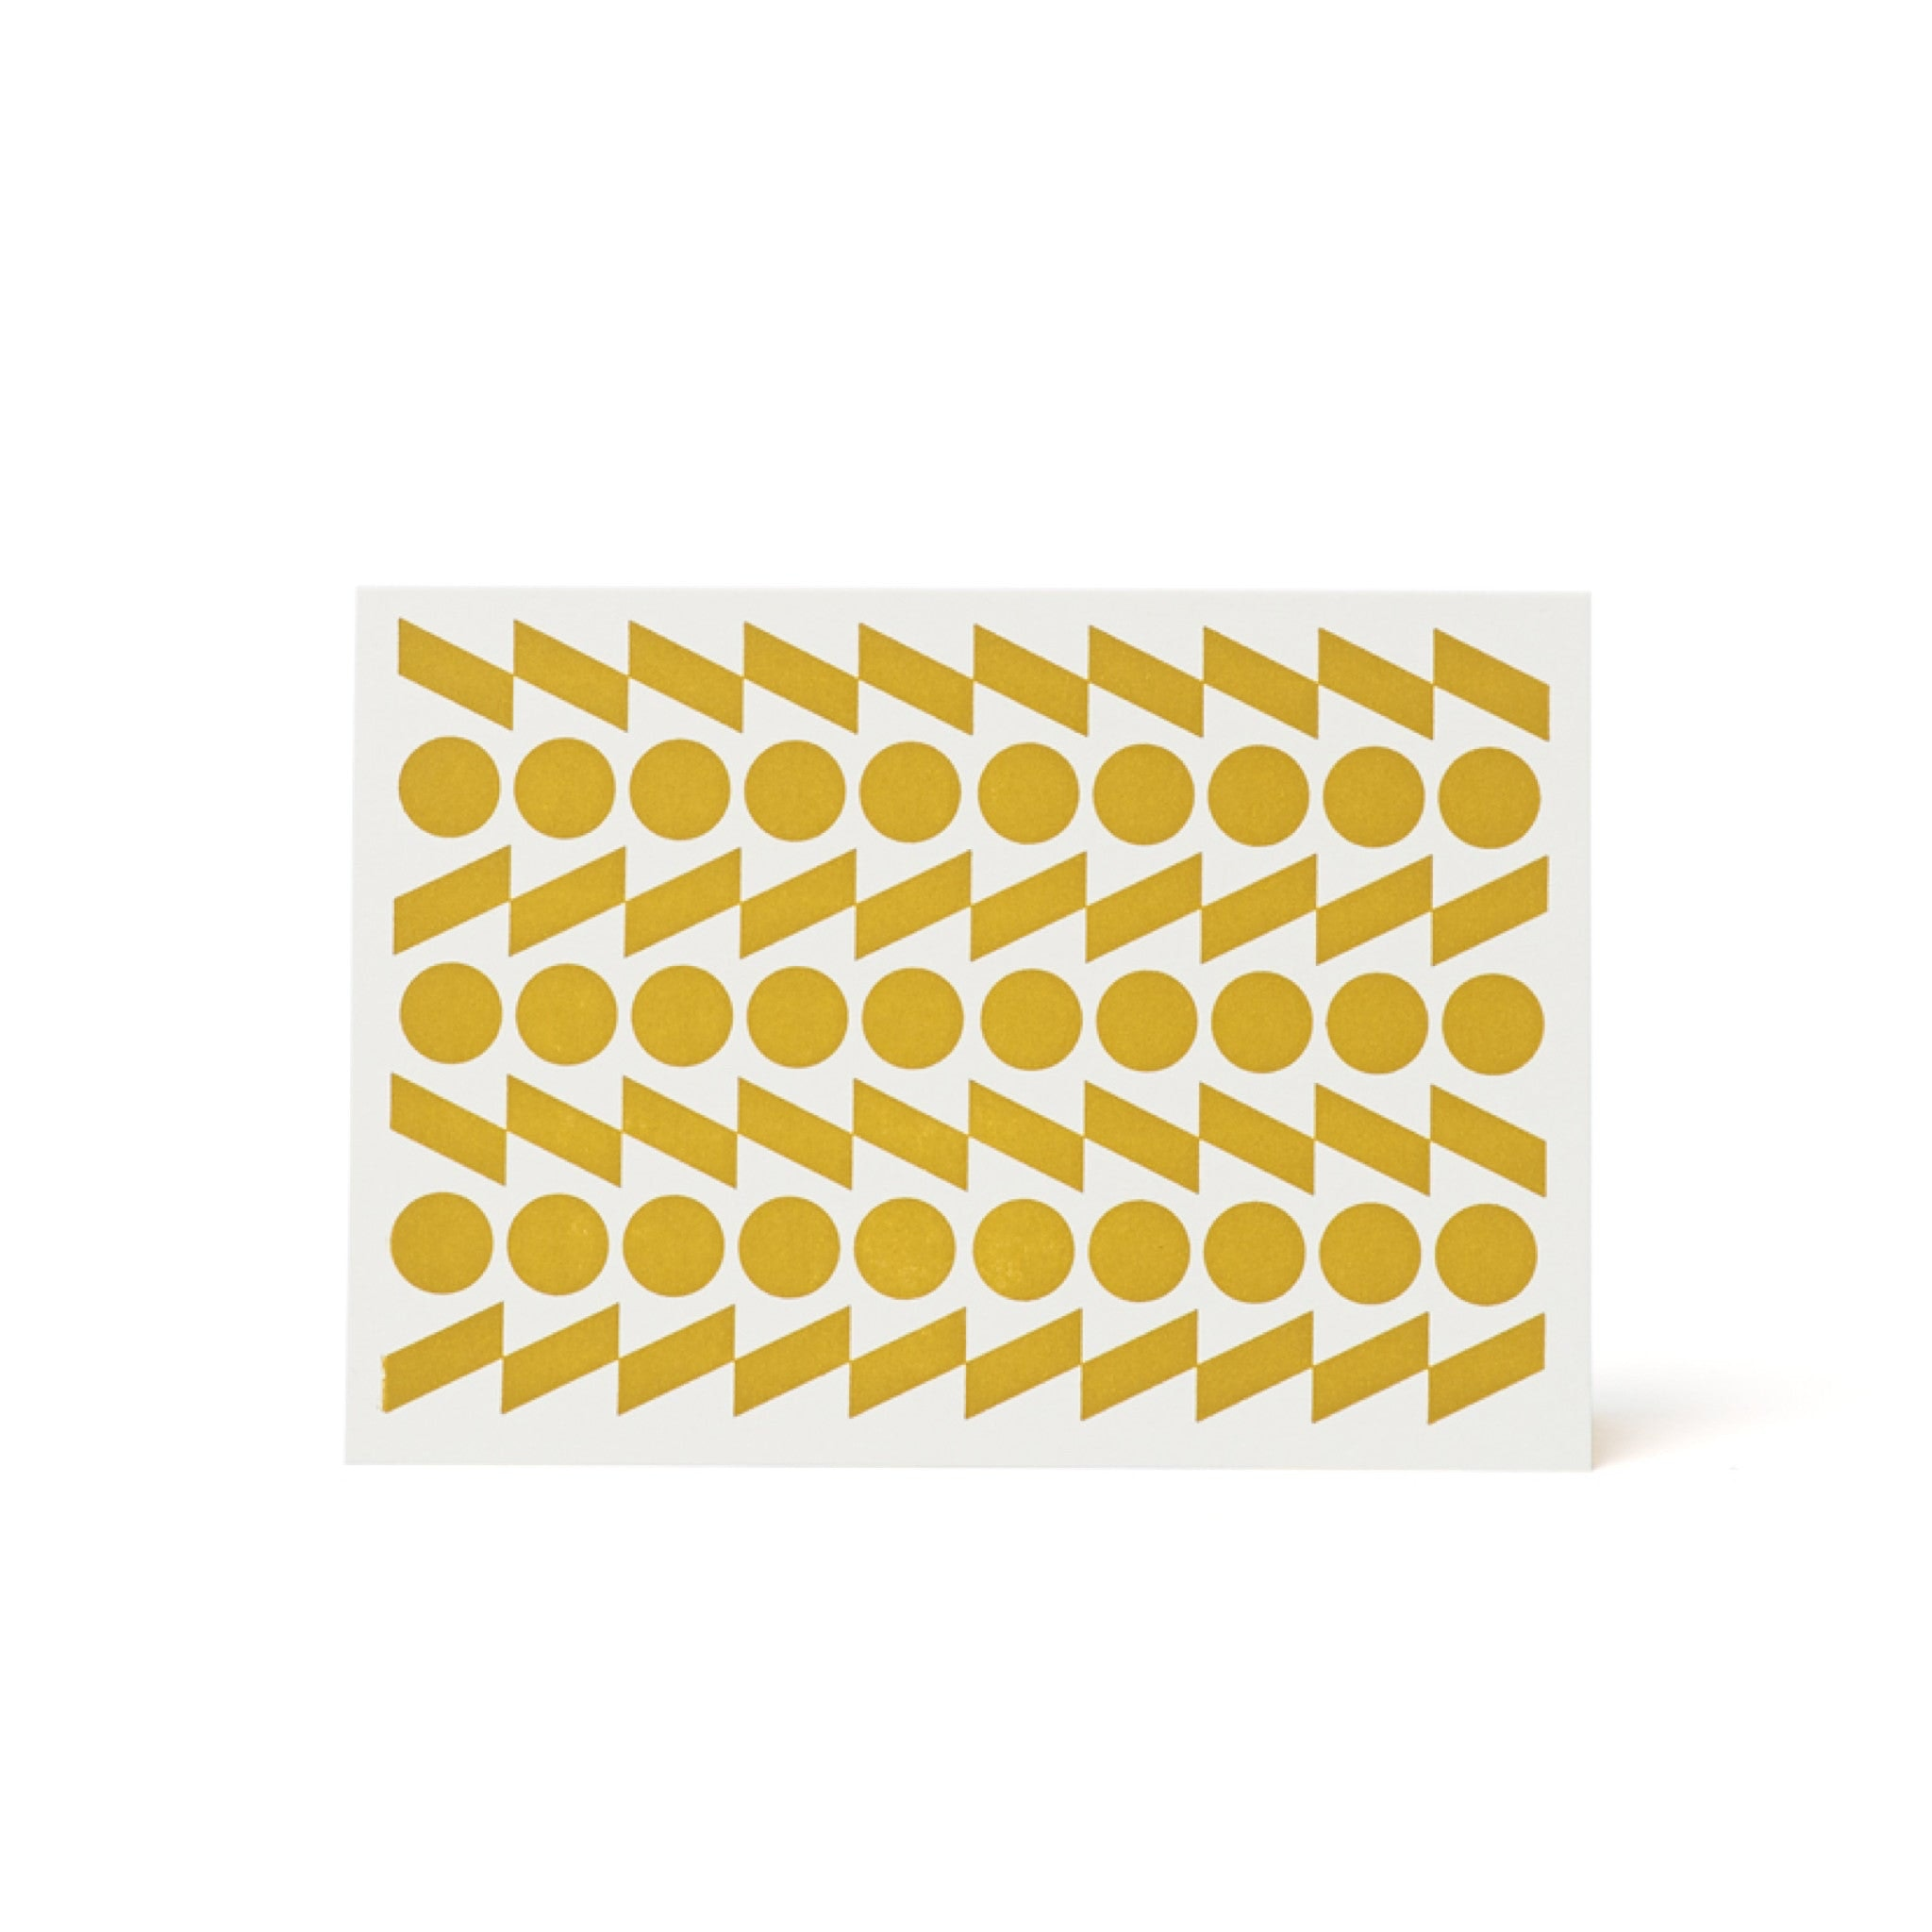 Rythym Letterpress Card - Yellow Ochre by Esme Winter